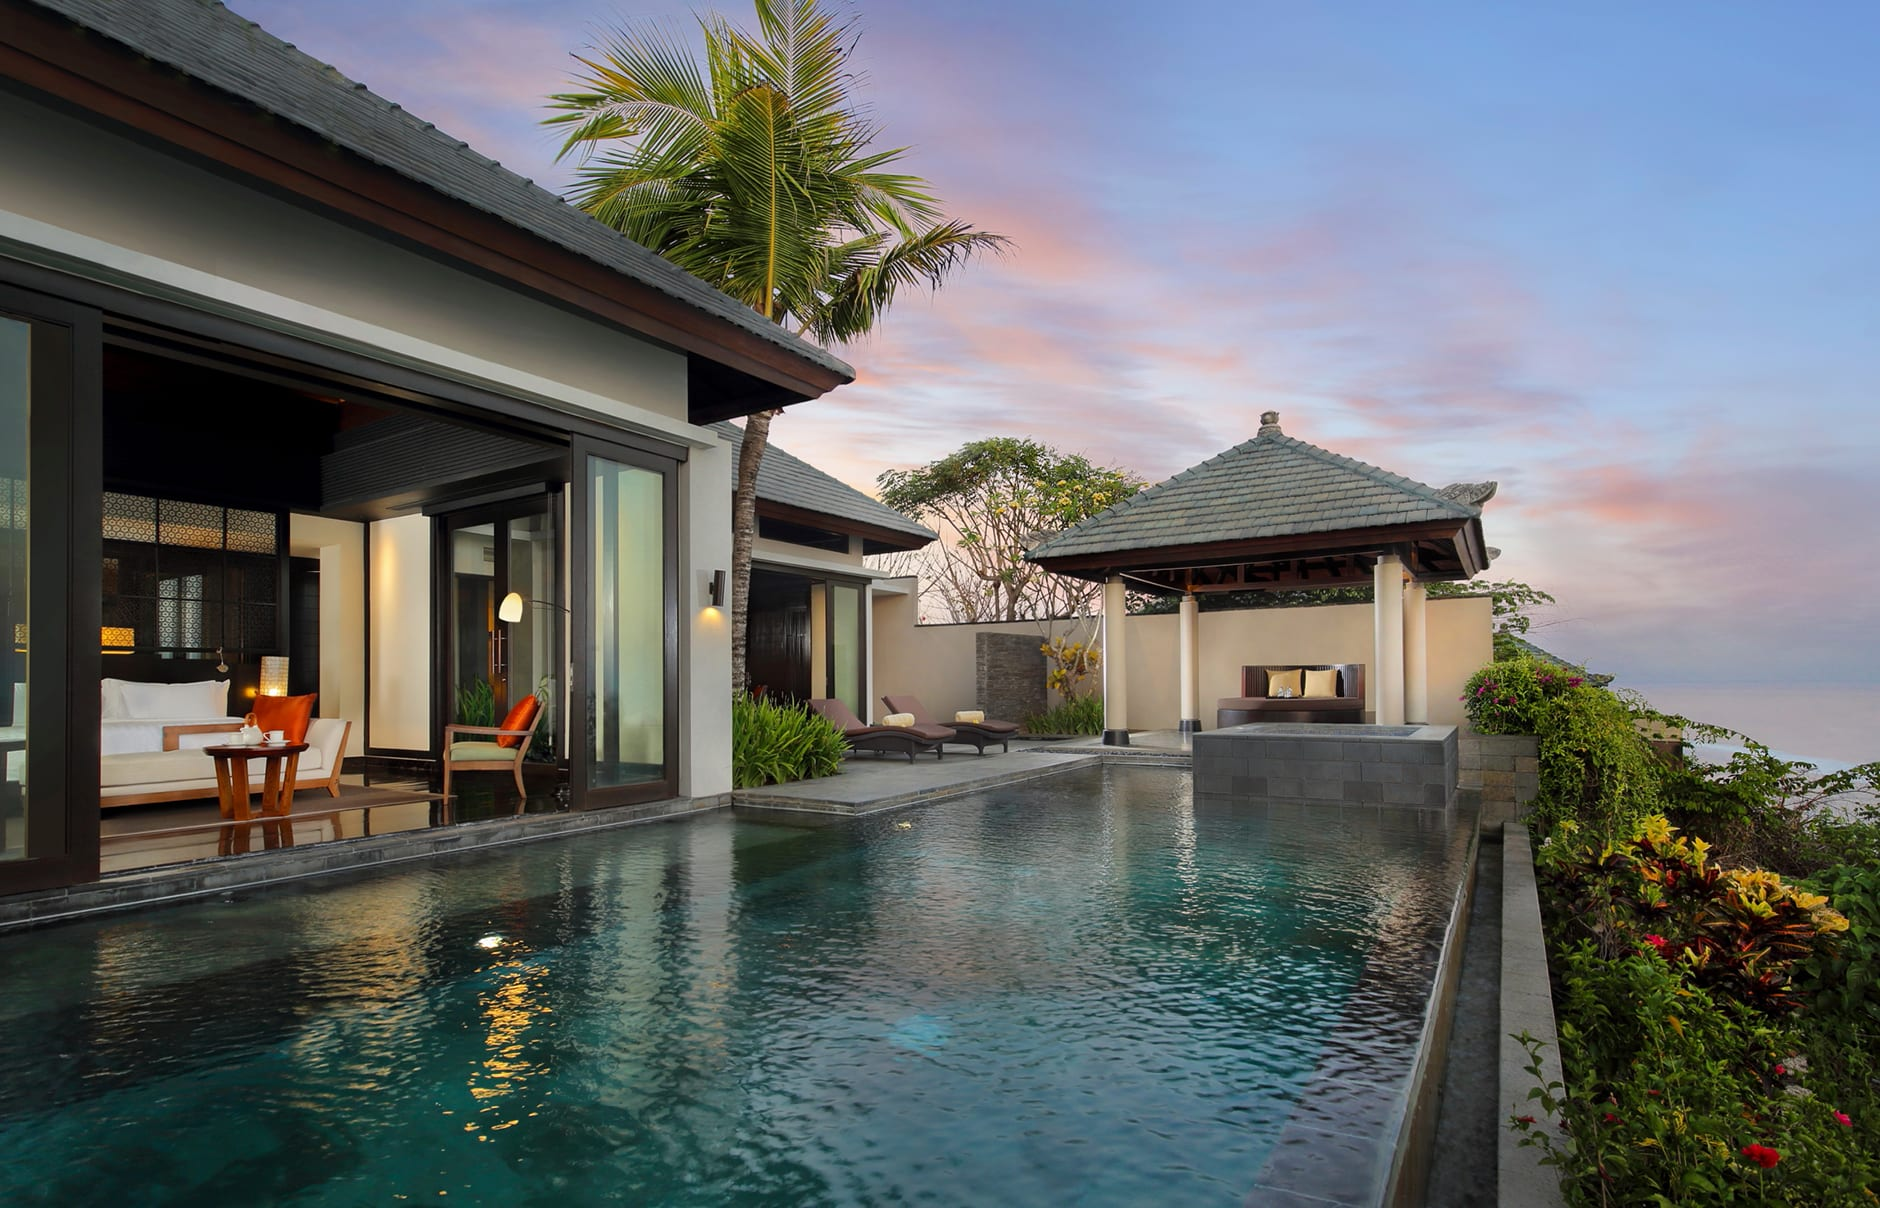 Banyan Tree Ungasan, Bali, Indonesia.  Hotel Review by TravelPlusStyle. Photo © Banyan Tree Hotels & Resorts